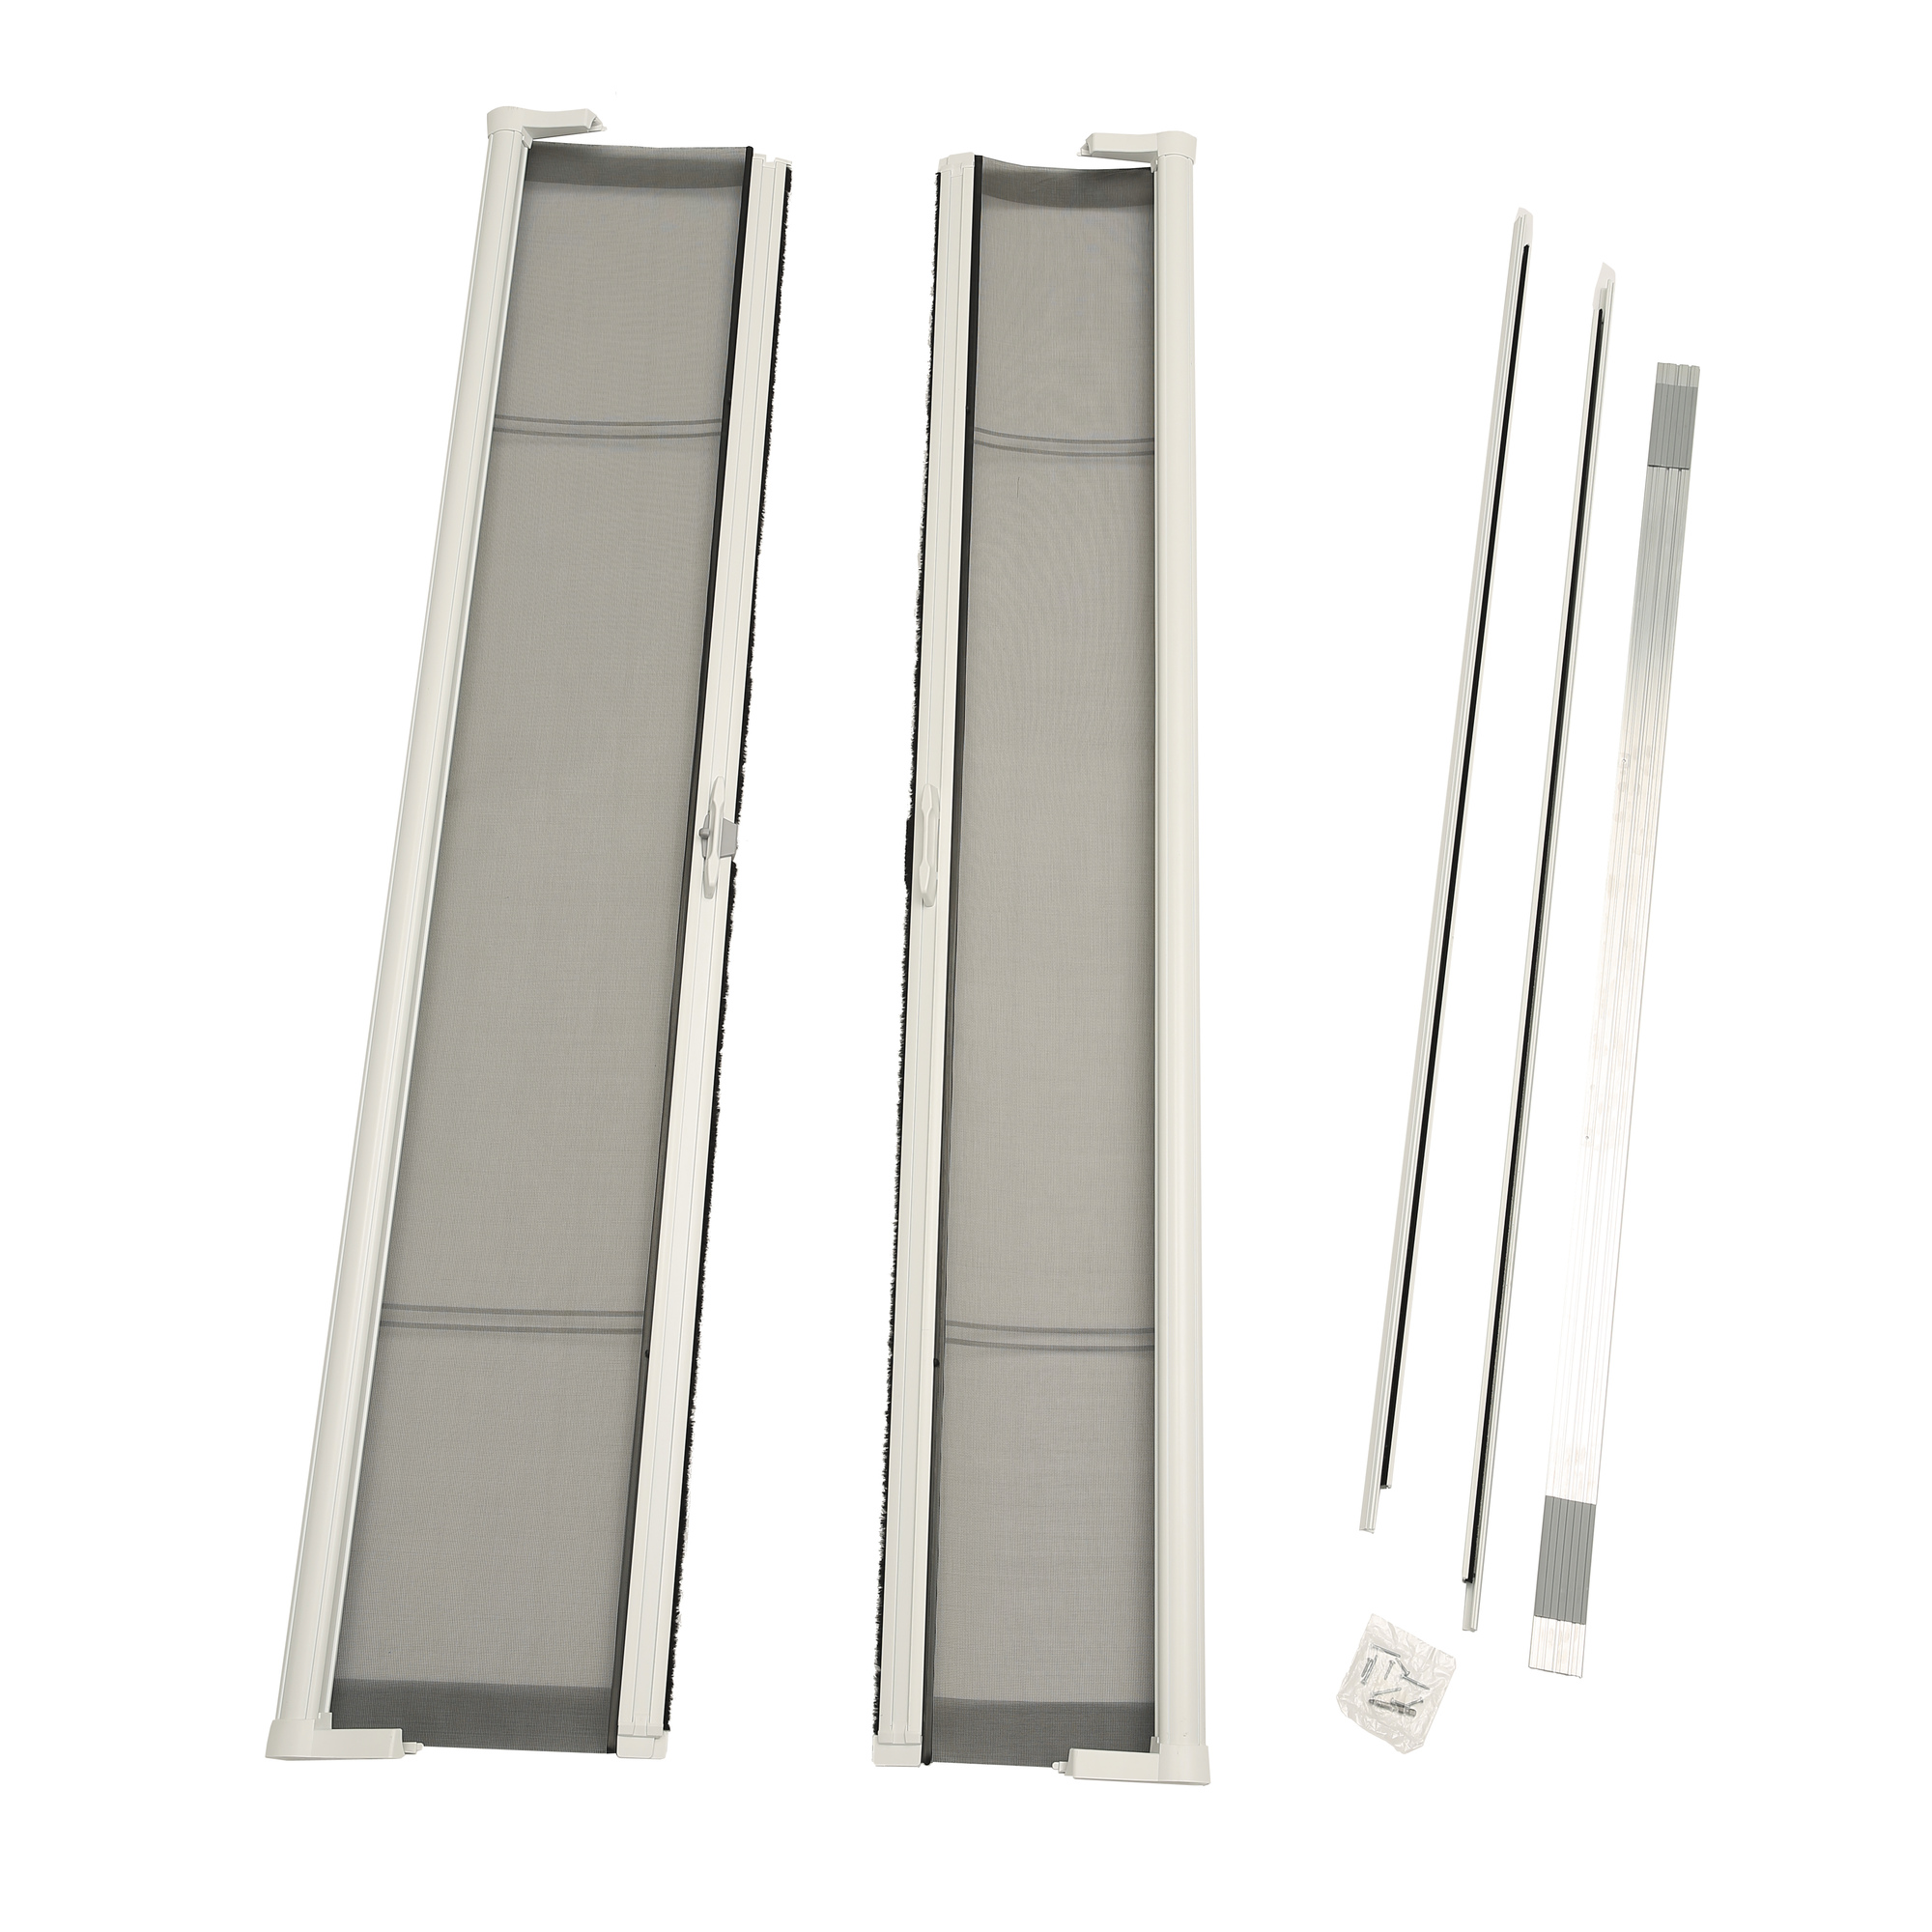 ODL Brisa White Standard Double Door Single Pack Retractable Screen for 80  Inswing/Outswing  sc 1 st  Walmart & ODL Brisa White Standard Double Door Single Pack Retractable Screen ...